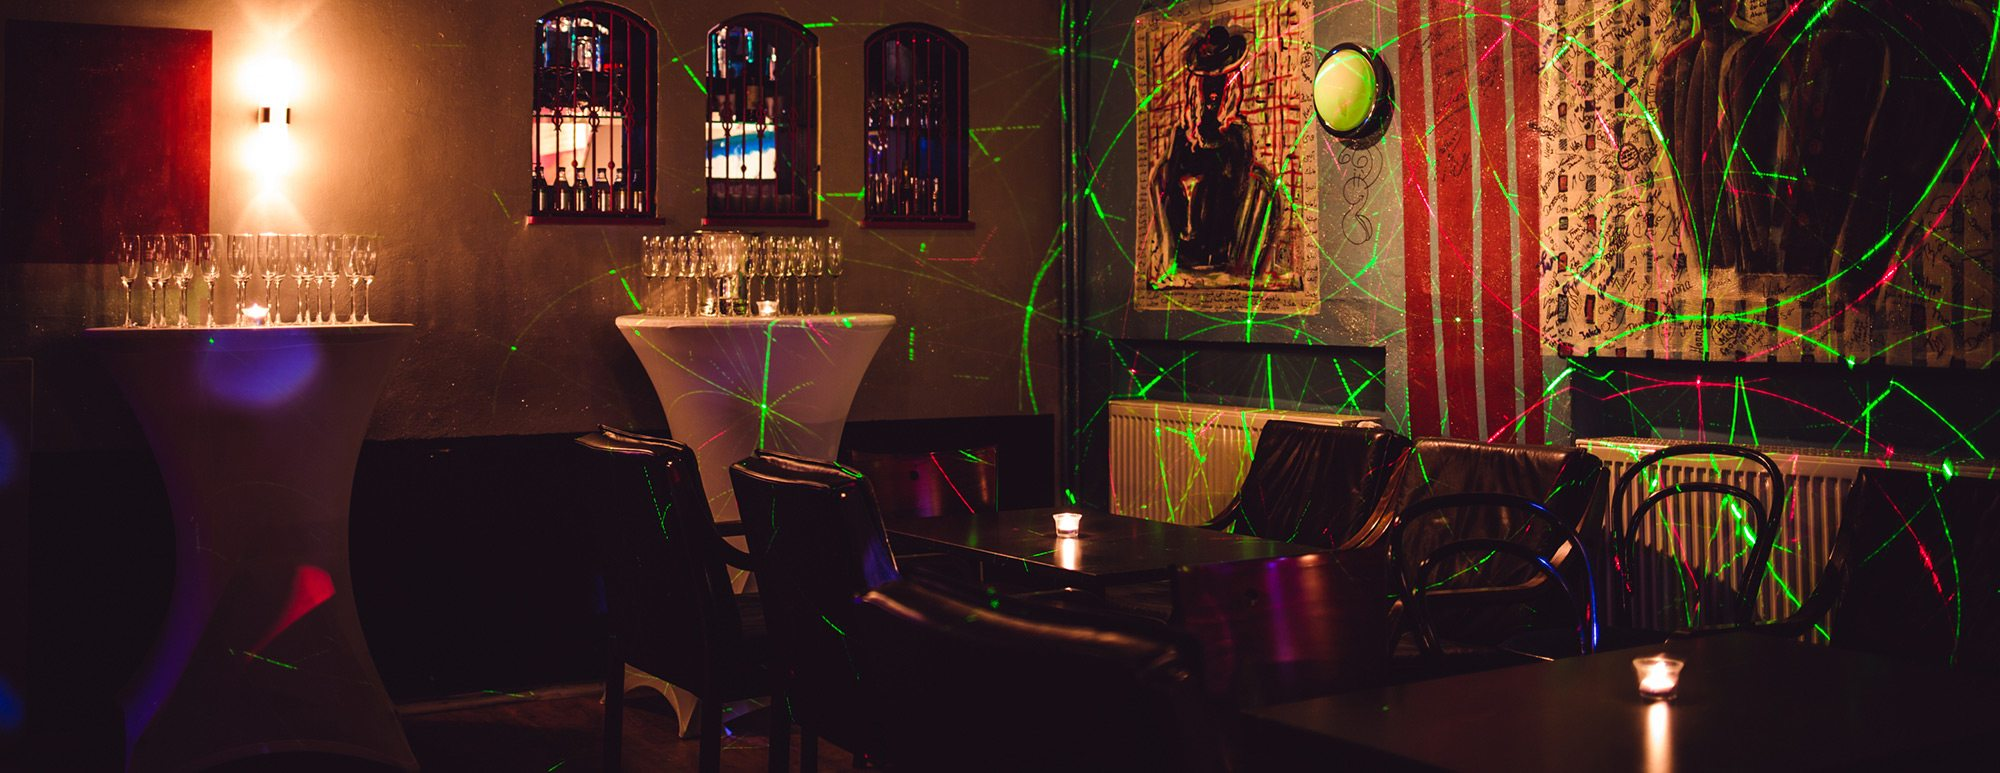 Mohrenstuben Bayreuth - Private Club & Cocktail Bar